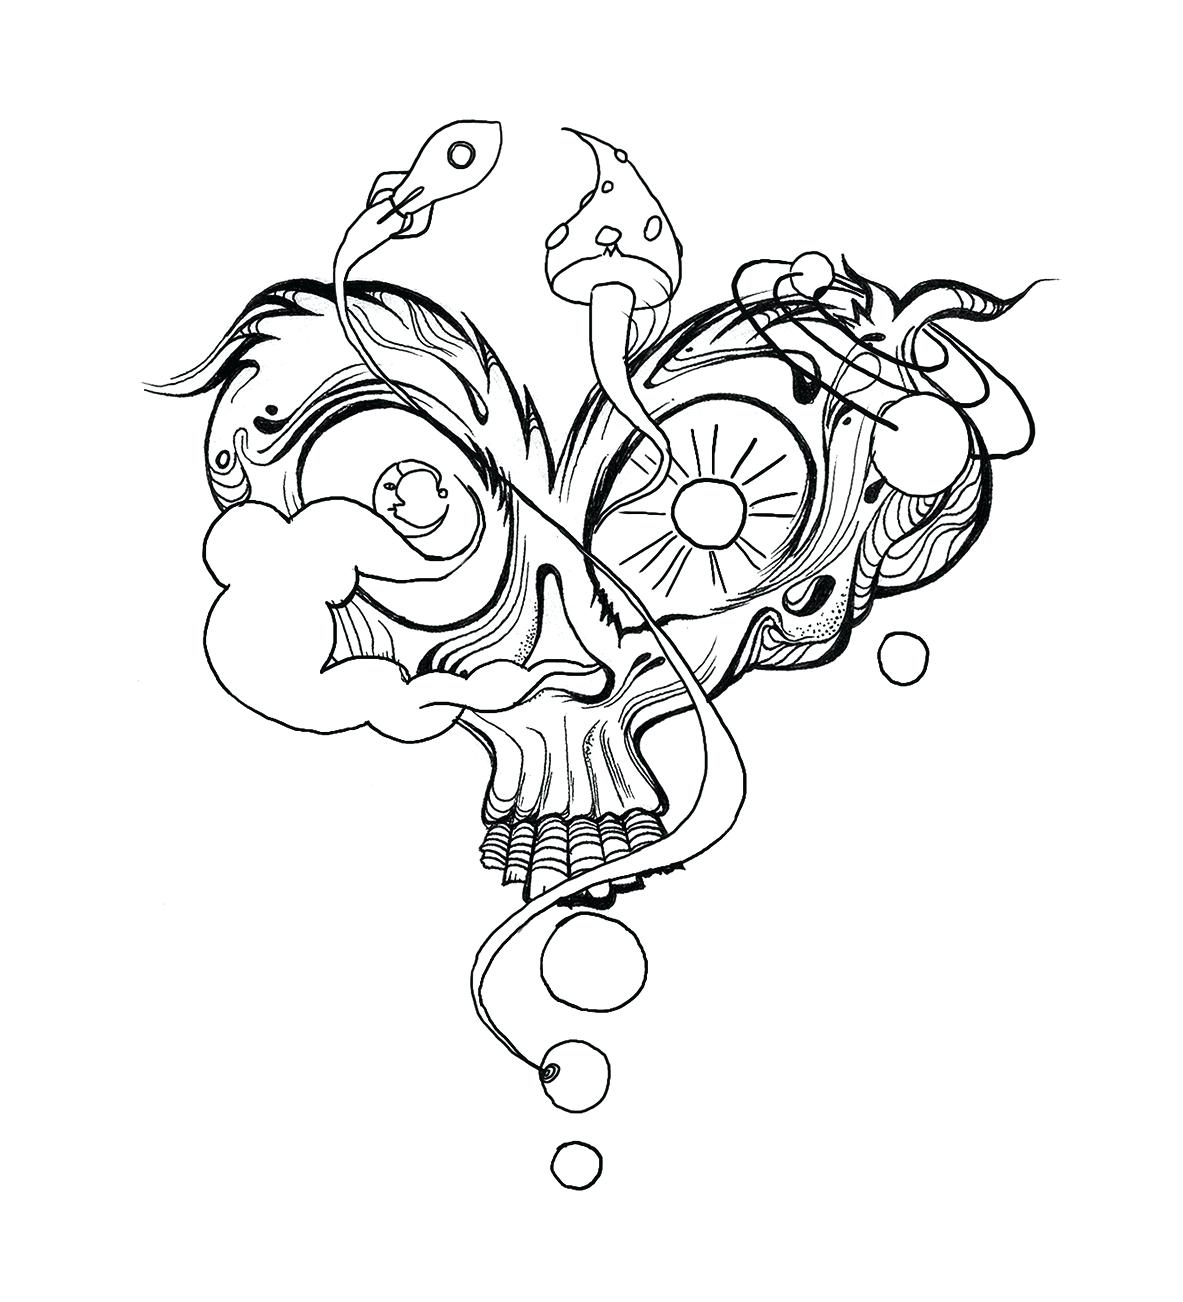 1183x1302 Convert Picture To Coloring Book Photoshop